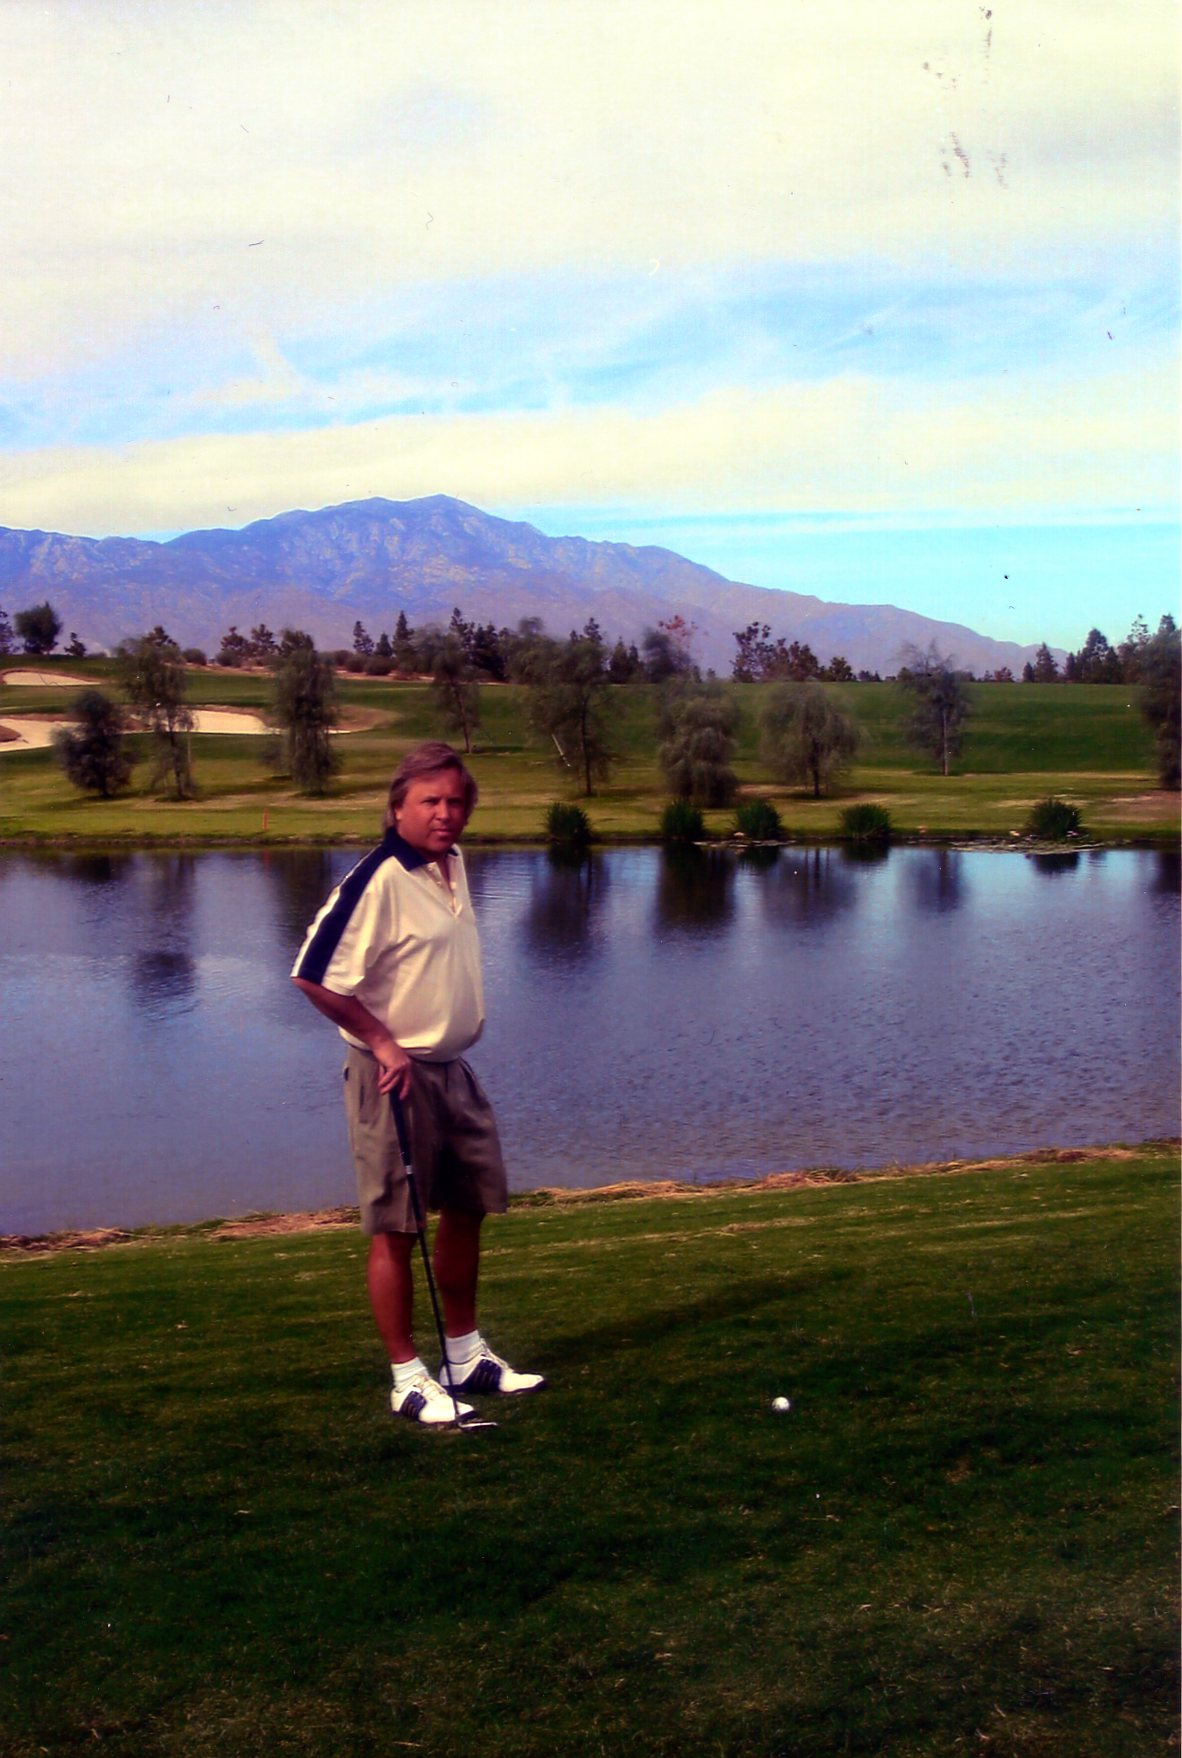 Palm Springs Hole in One Kevin Kolenda Images